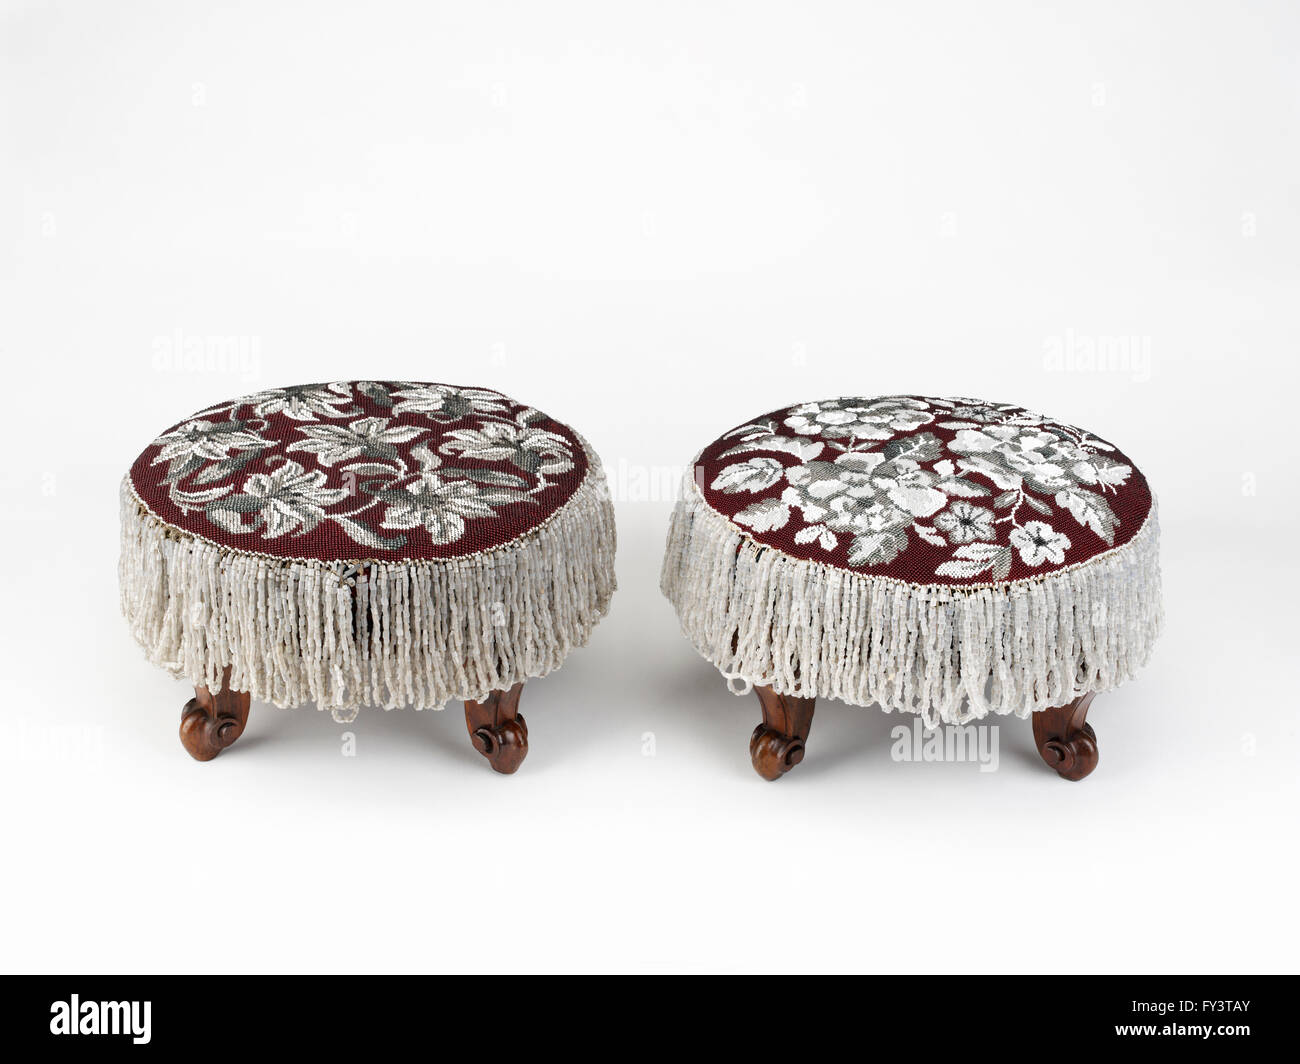 A pair of circular footstools, each with a wooden base and detachable beaded cover - Stock Image